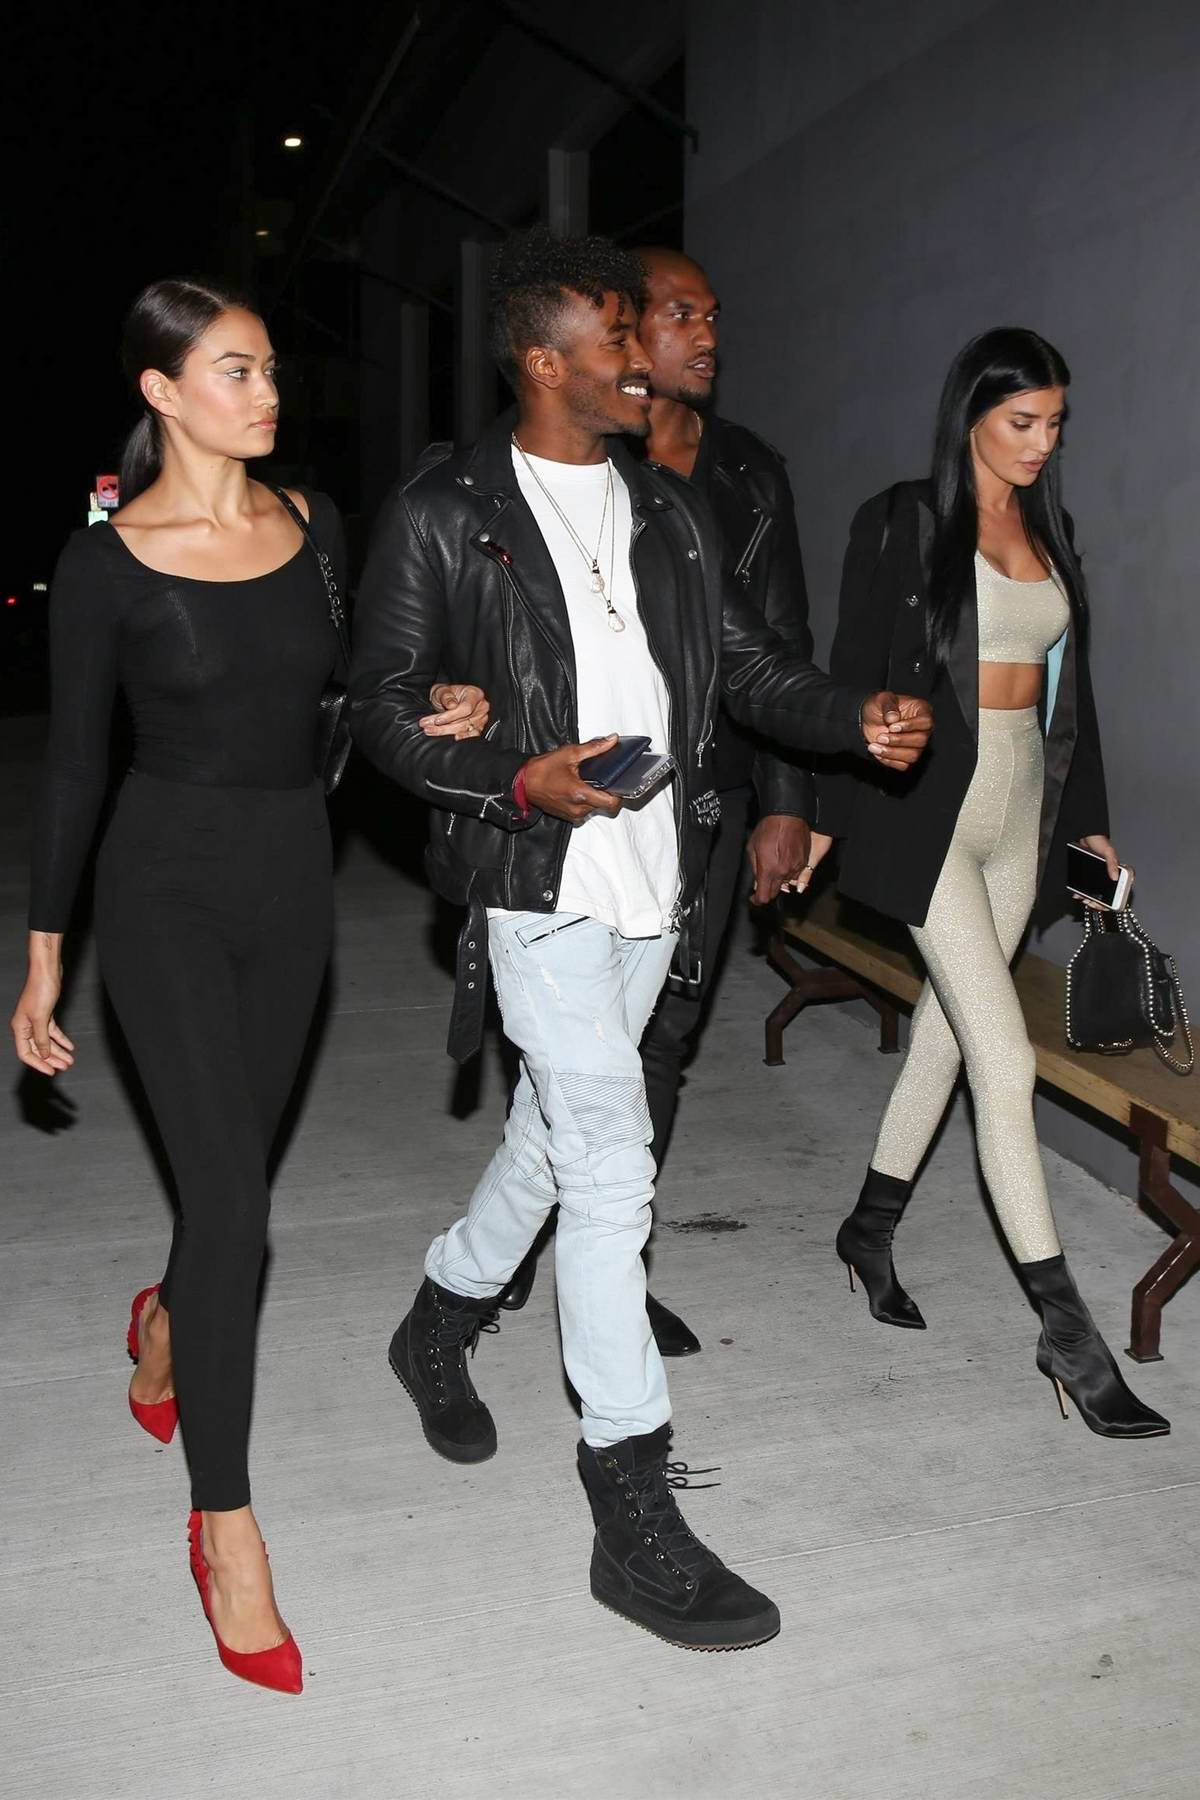 Shanina Shaik and Nicole Williams spotted out on a double date in Los Angeles